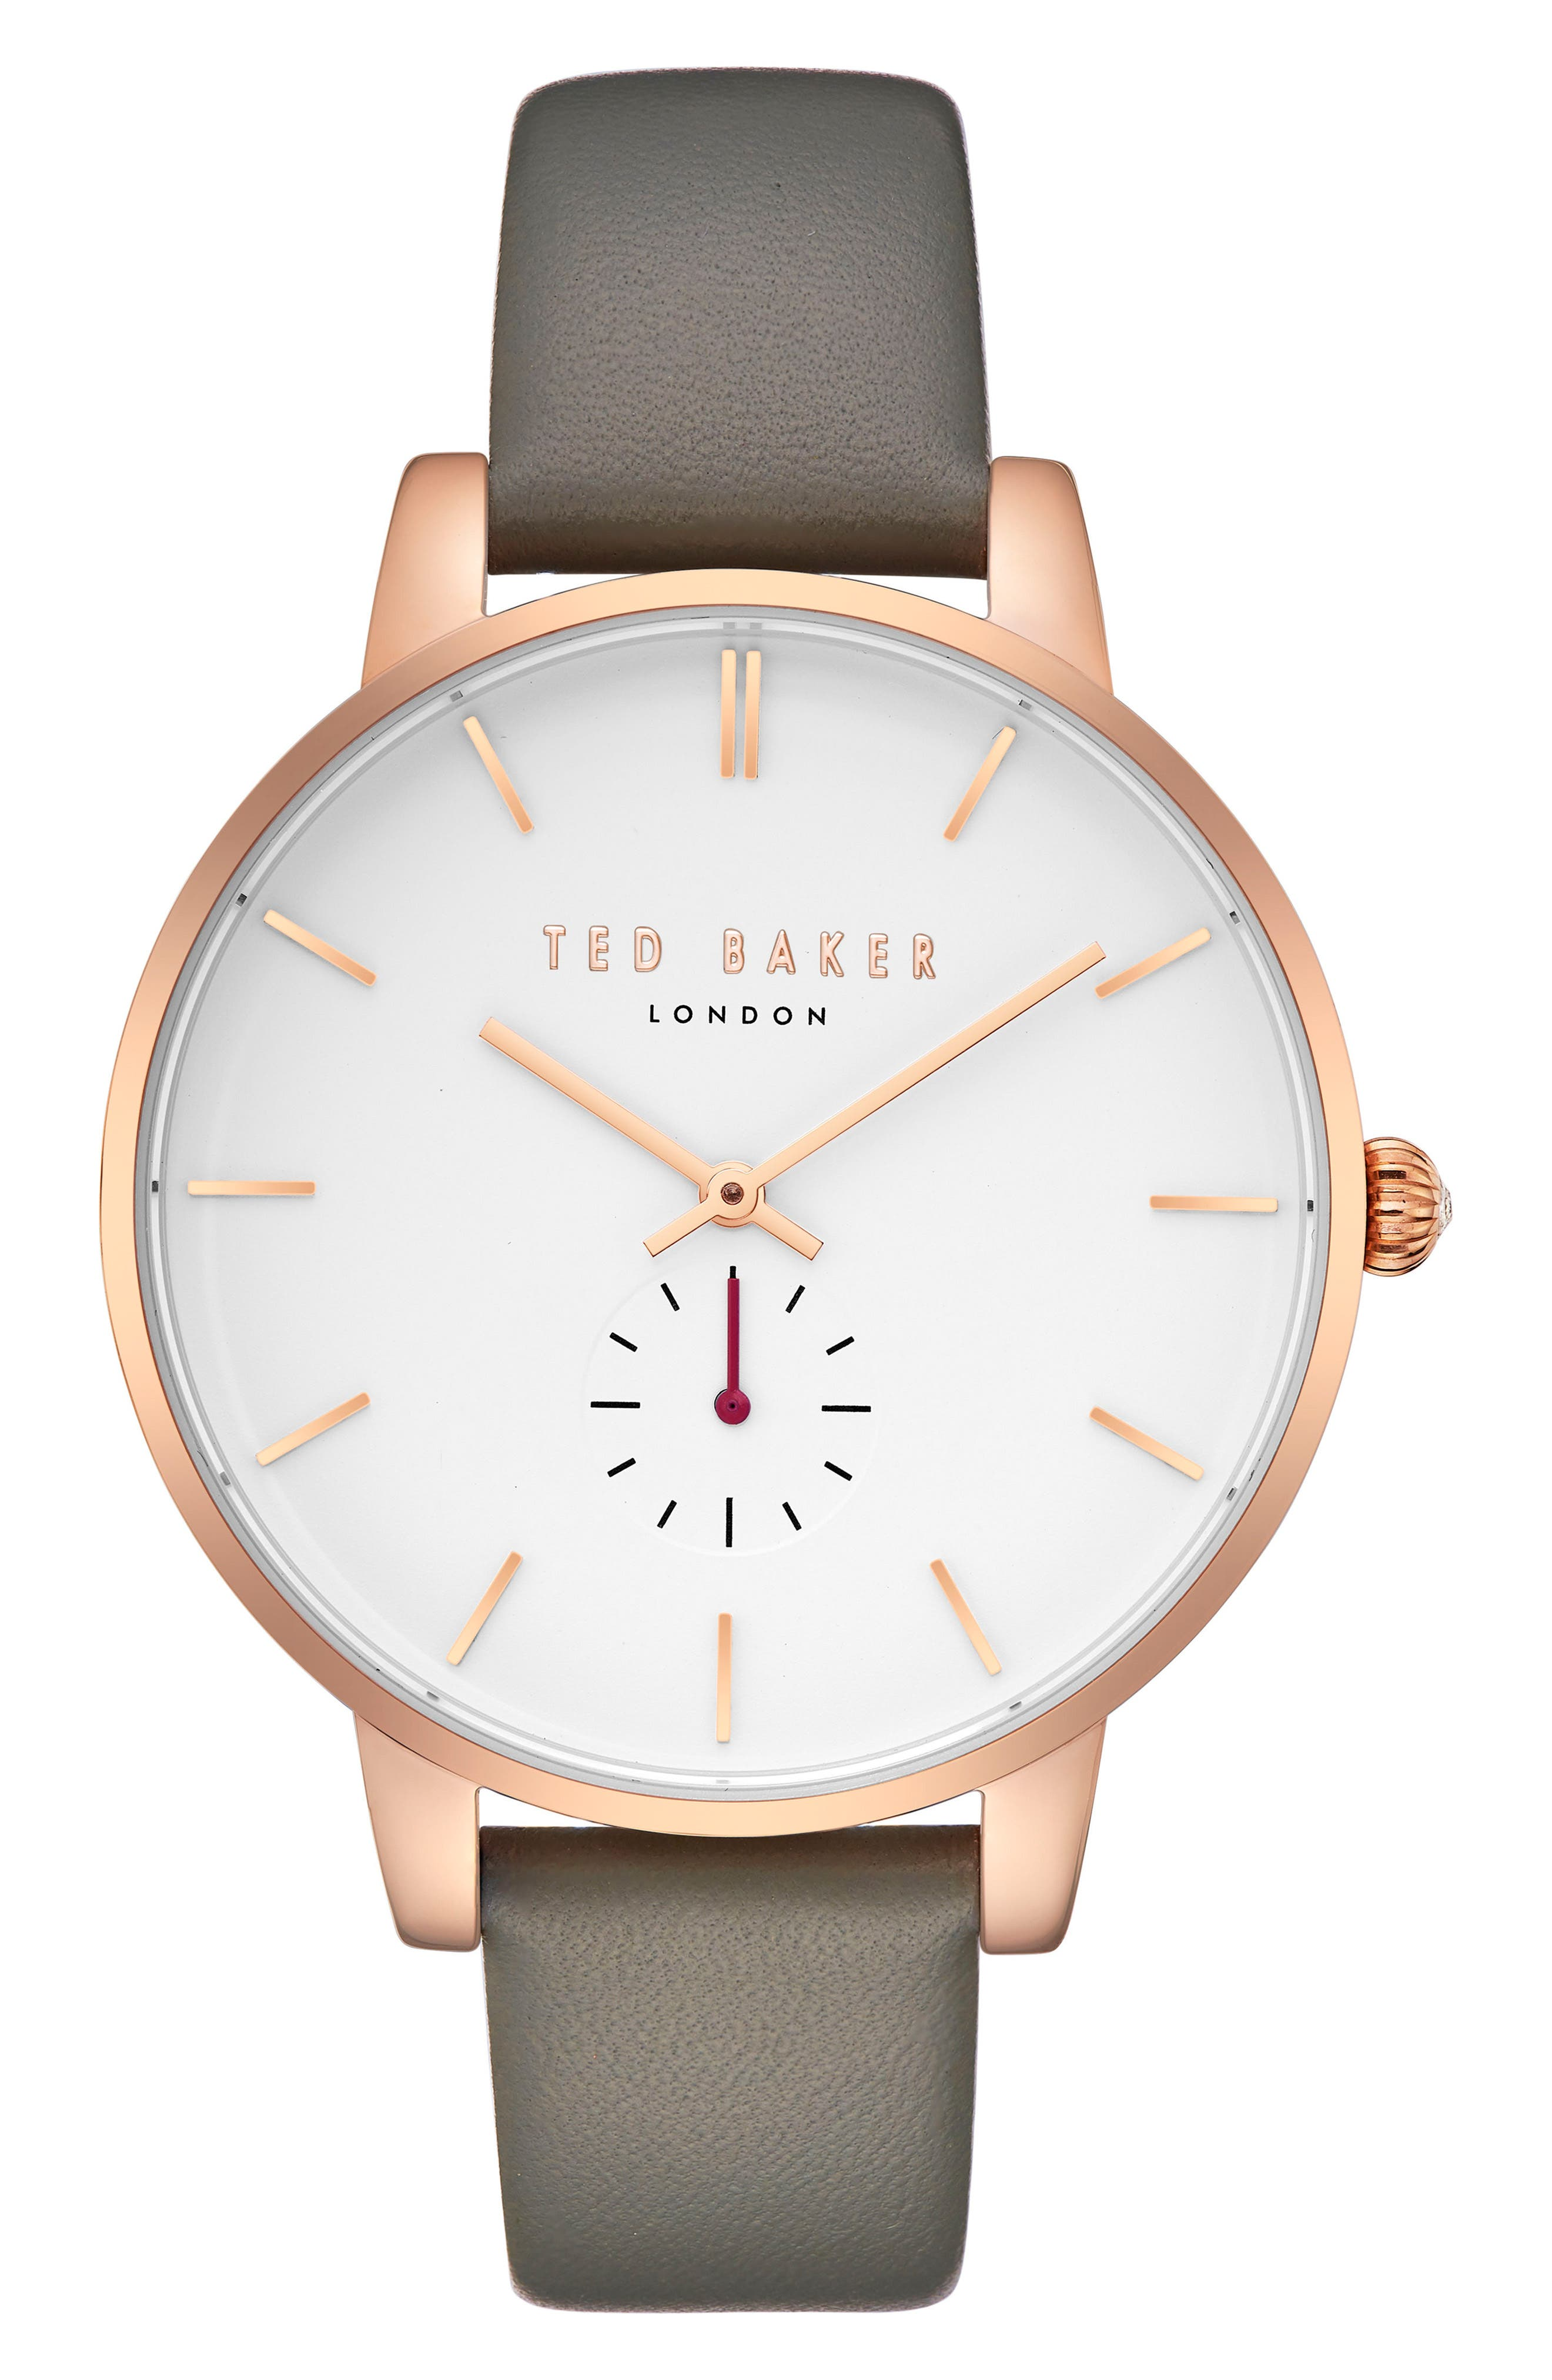 Olivia Leather Strap Watch,                         Main,                         color, Grey/ White/ Rose Gold